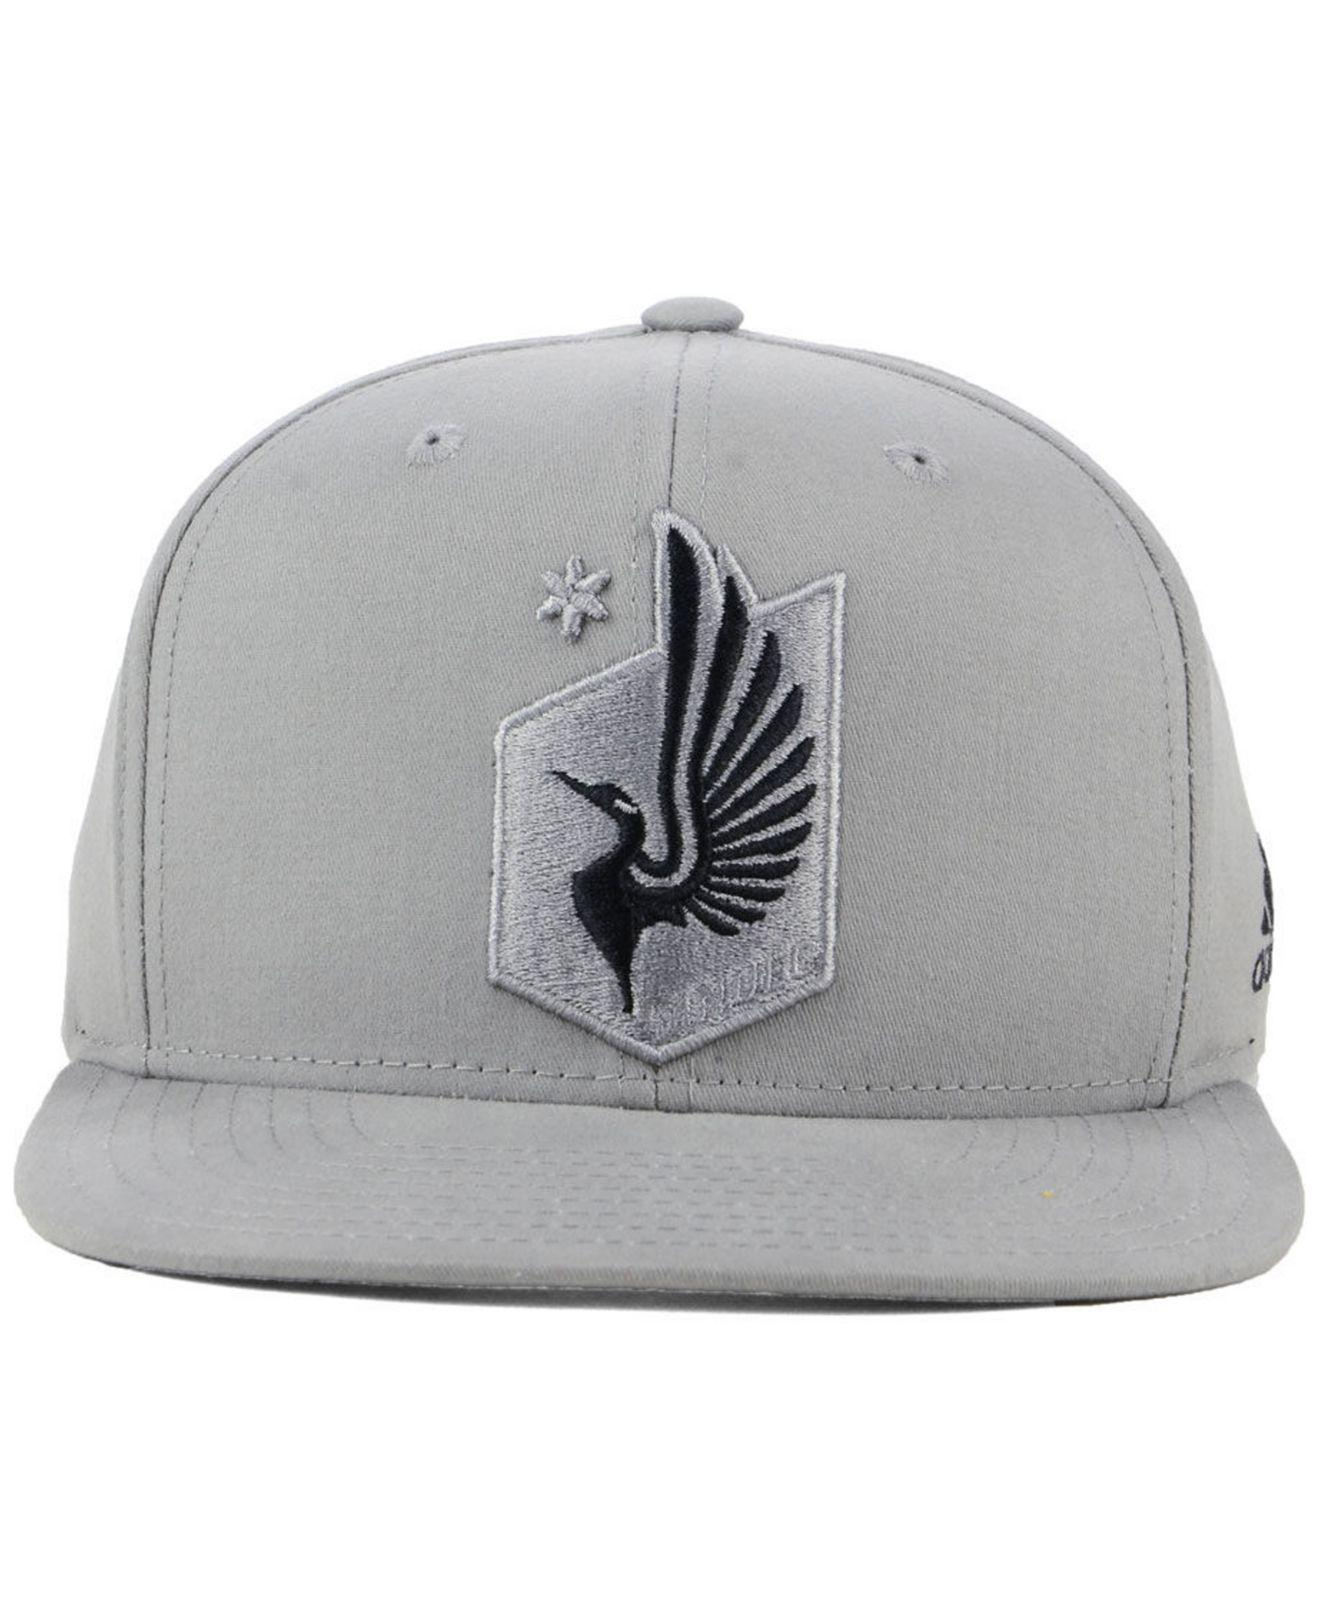 more photos 8d149 85373 ... top quality lyst adidas minnesota united fc gray snapback cap in gray  for men 14bb5 172d3